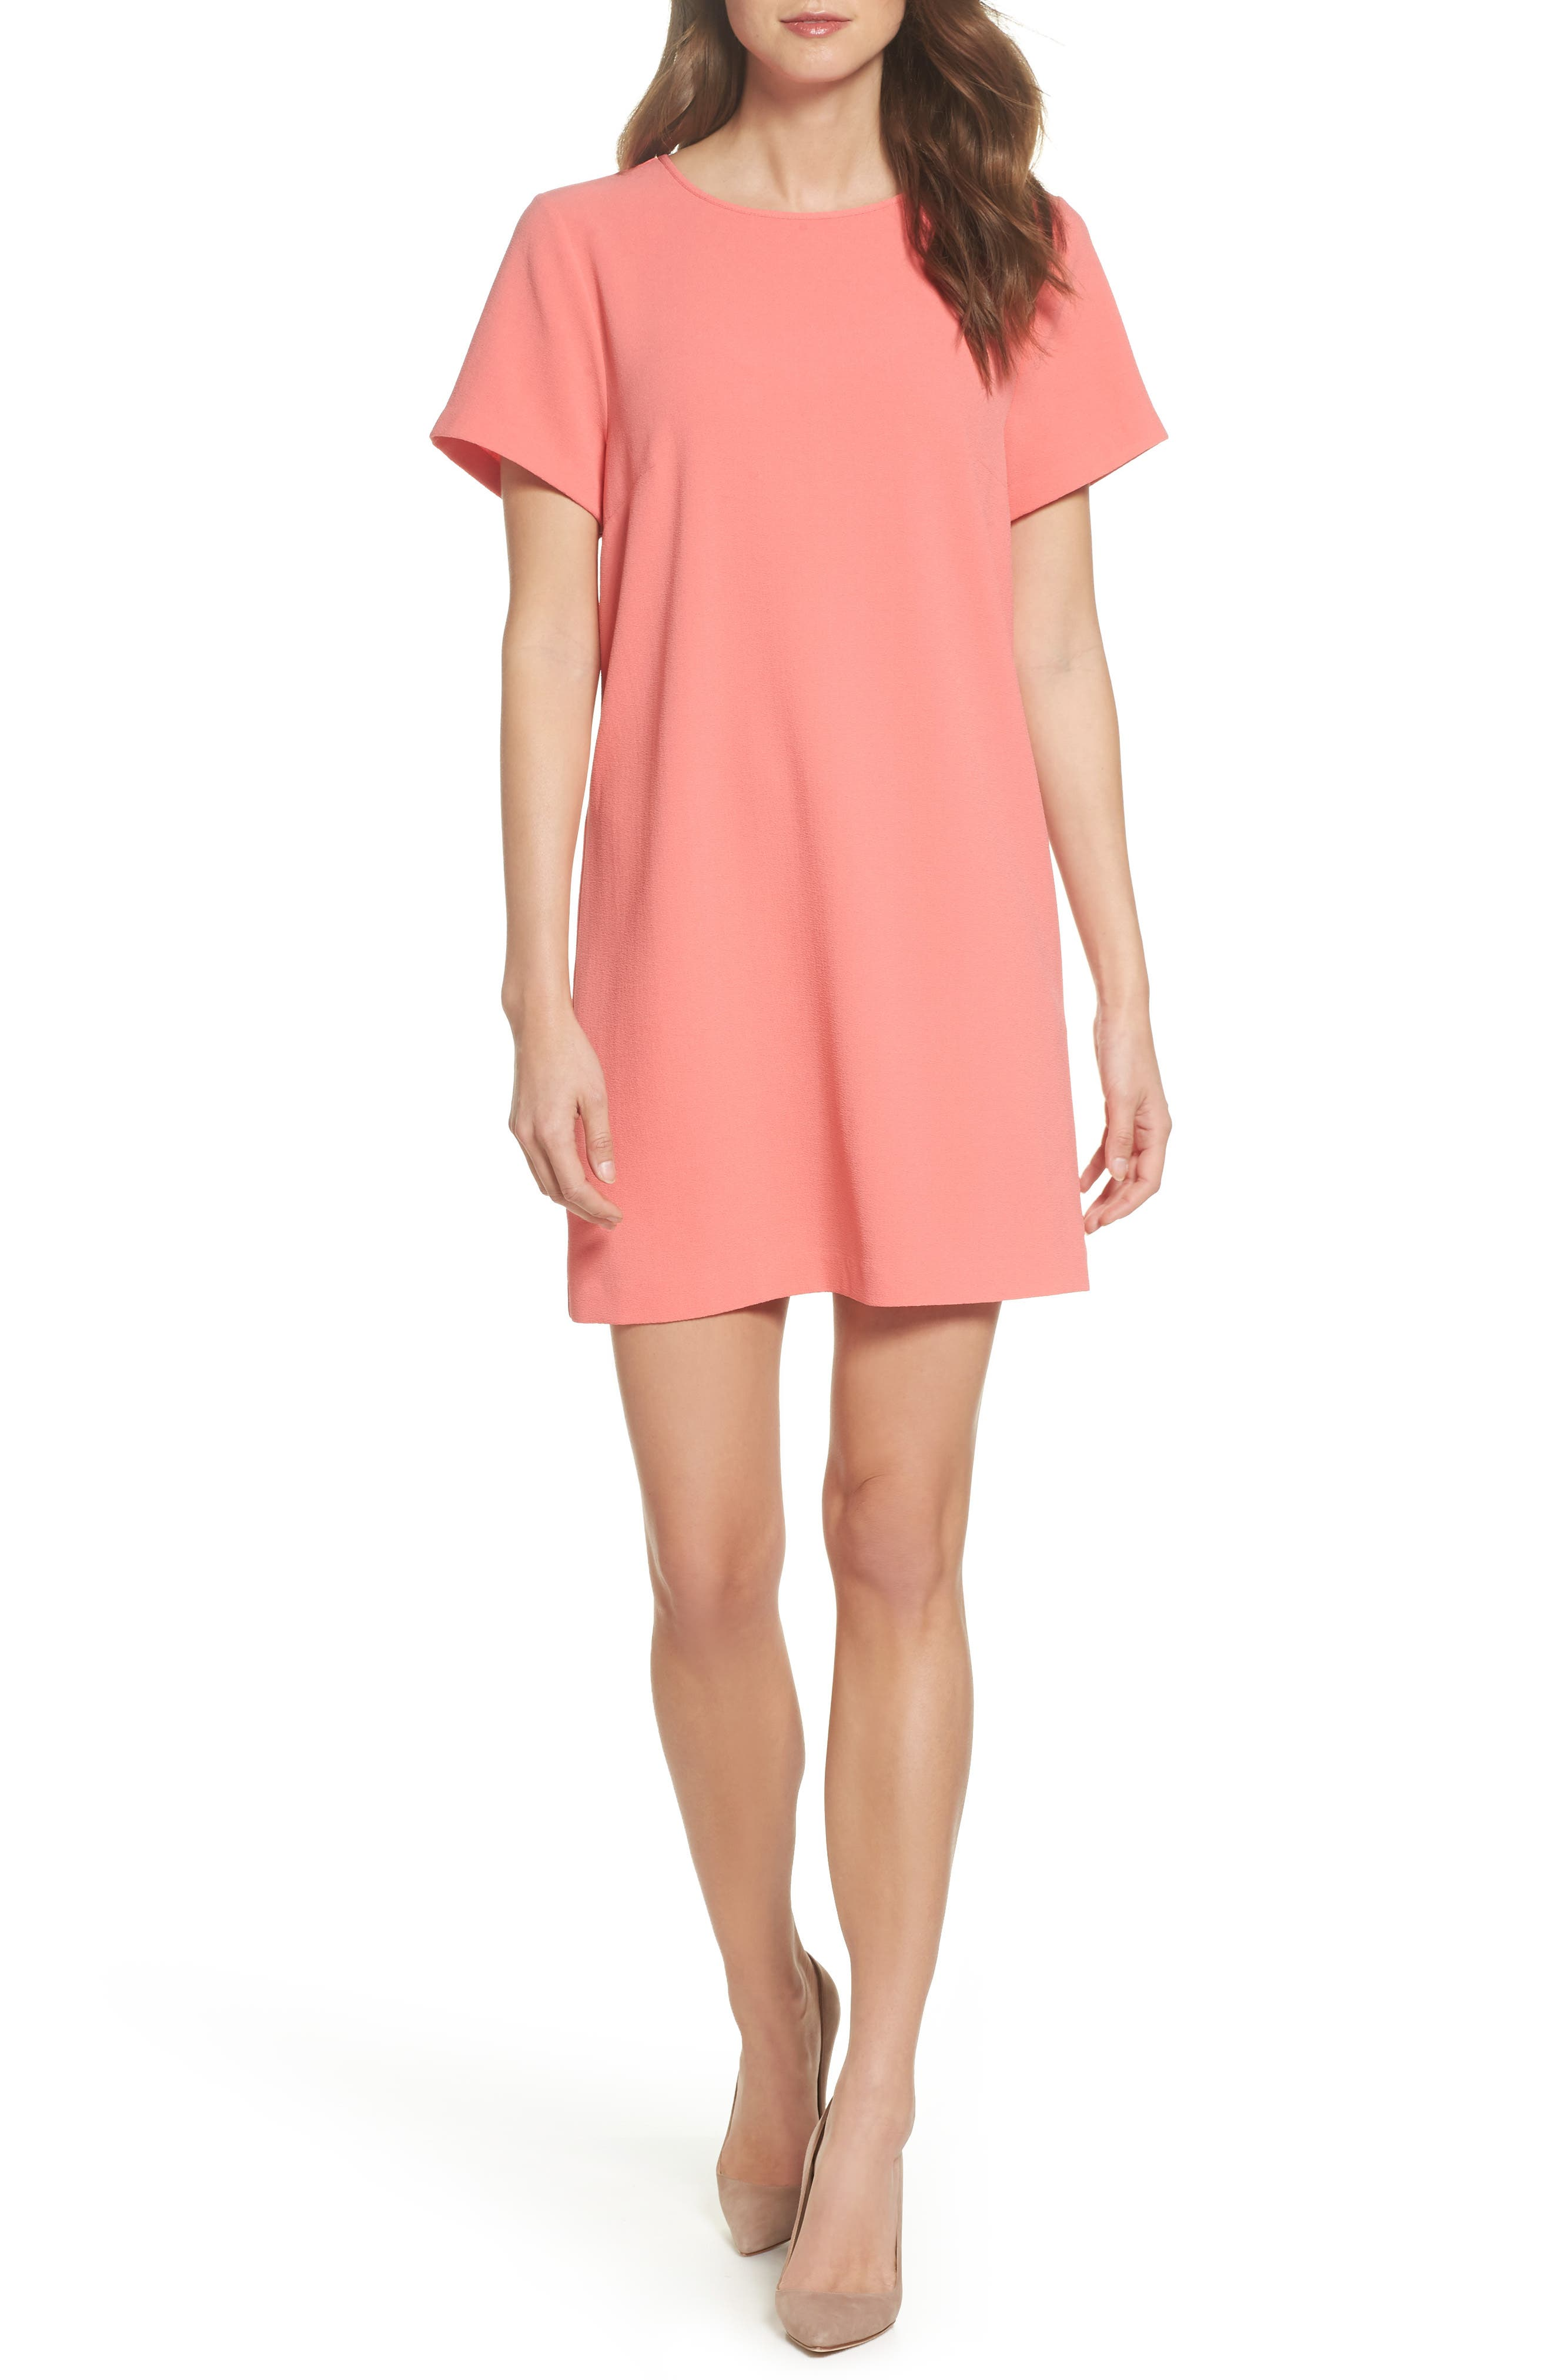 Main Image - Felicity & Coco Devery Crepe Shift Dress (Nordstrom Exclusive)